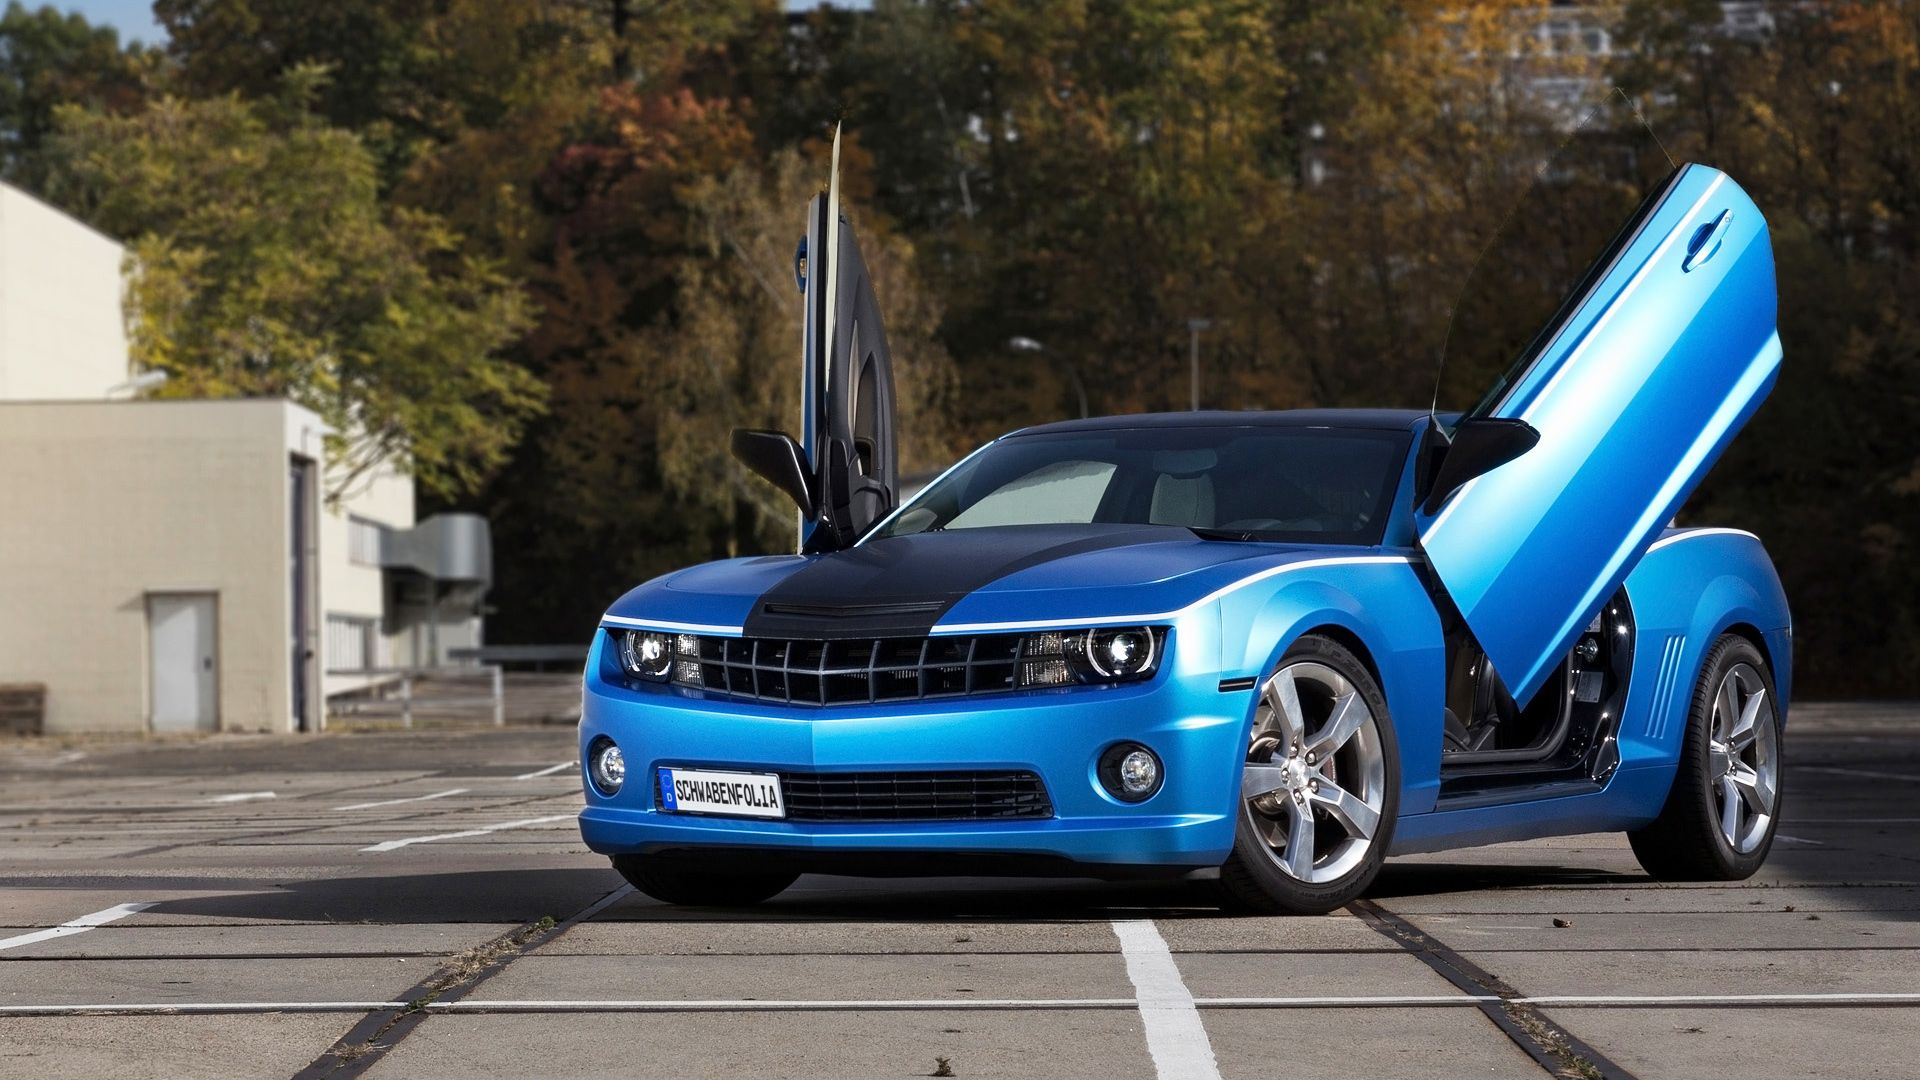 Download Chevrolet Camaro Wallpaper HD Widescreen From The Above Resolutions If You Dont Find Exact Resolution Are Looking For